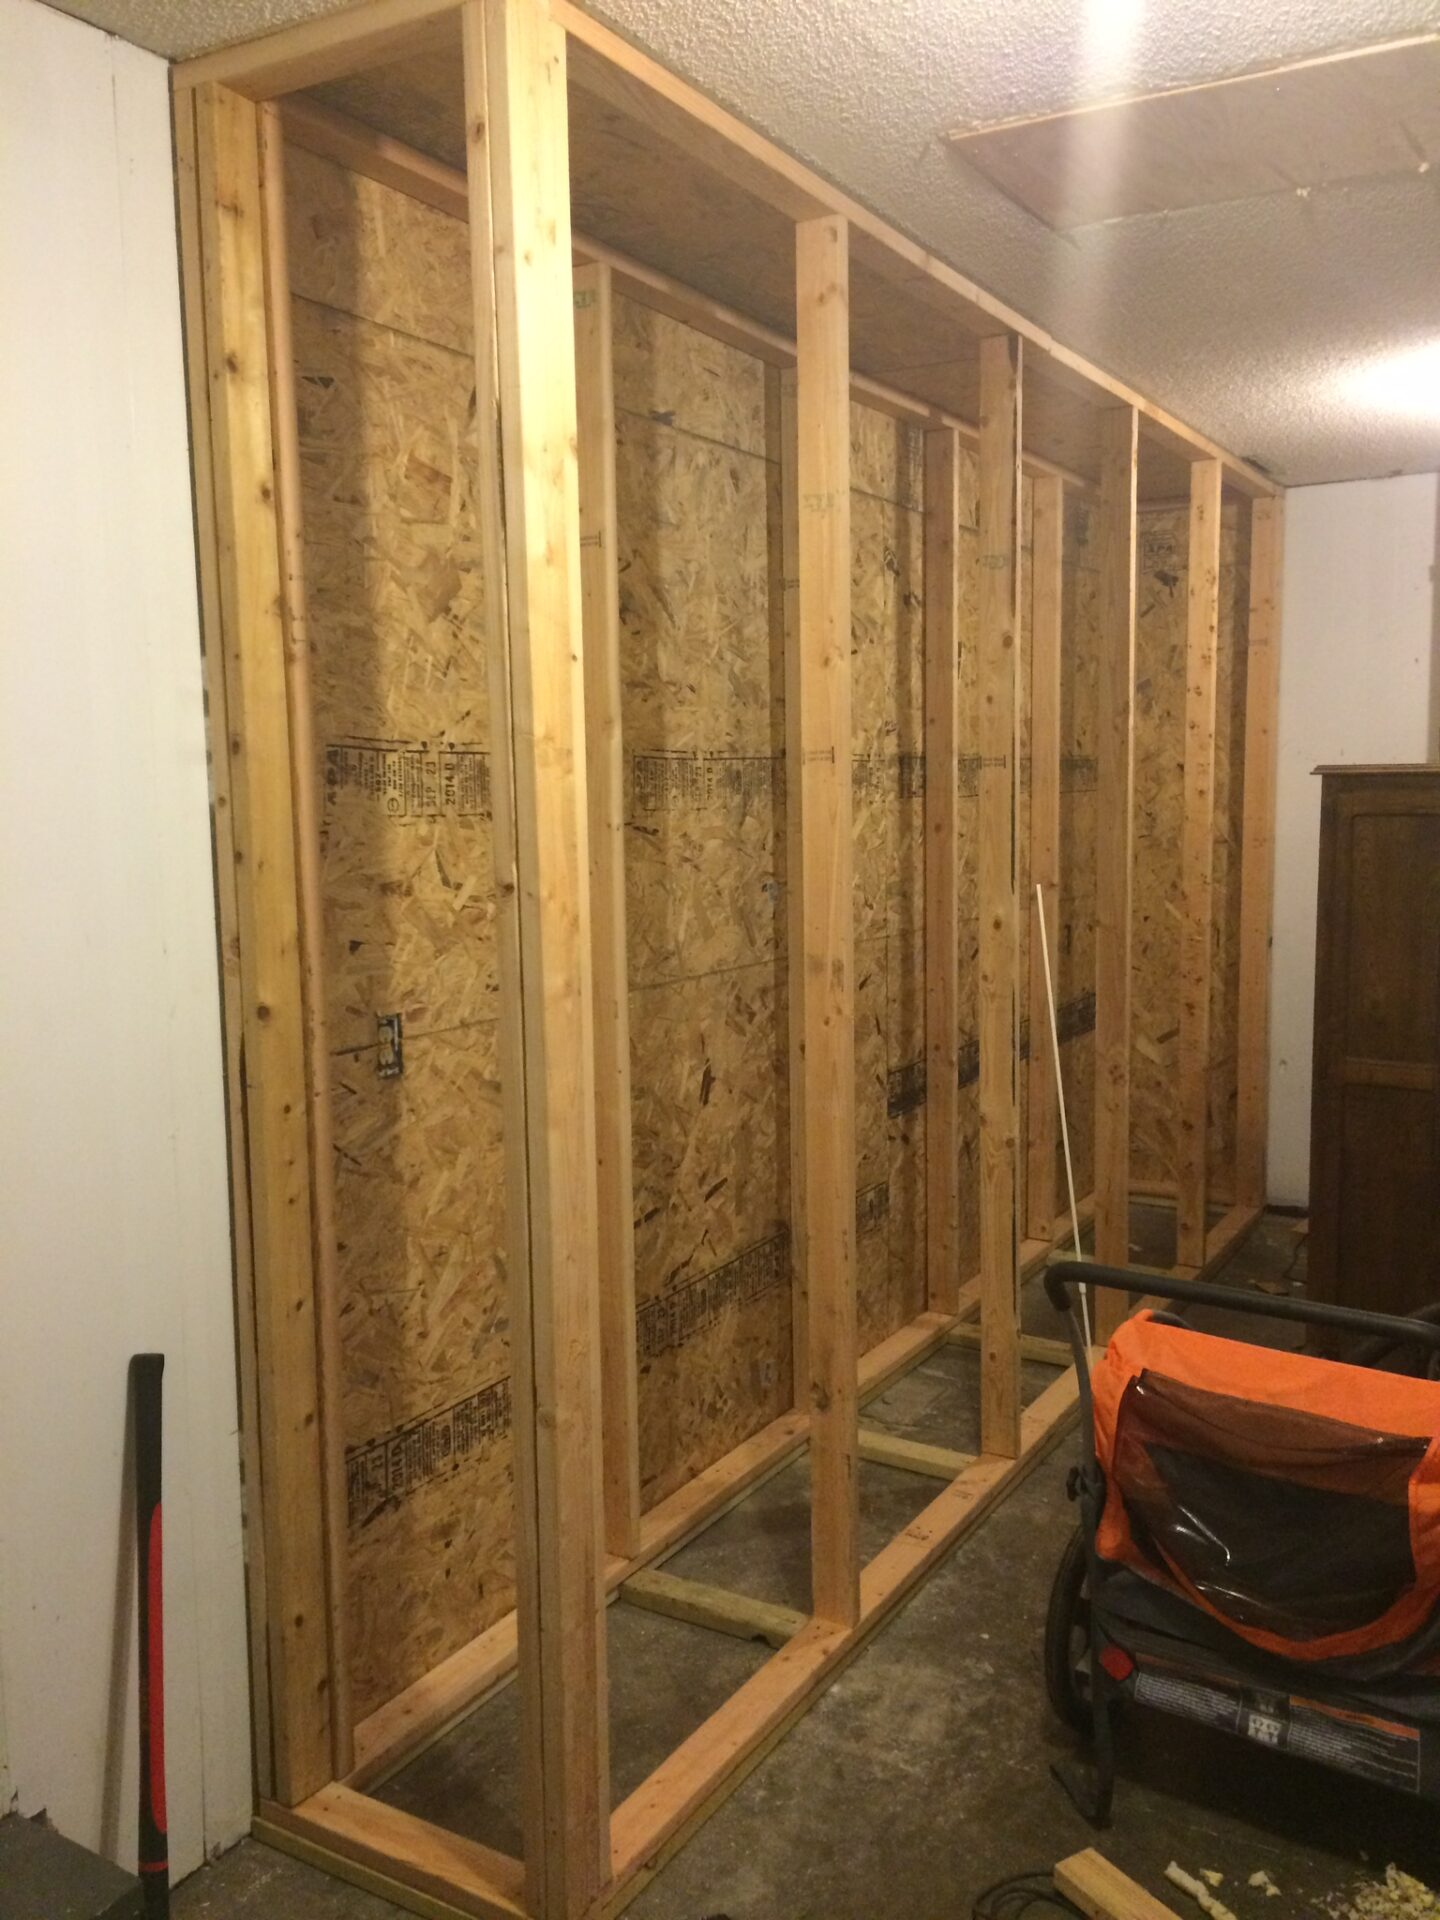 How to Plan & Build DIY Garage Storage Cabinets